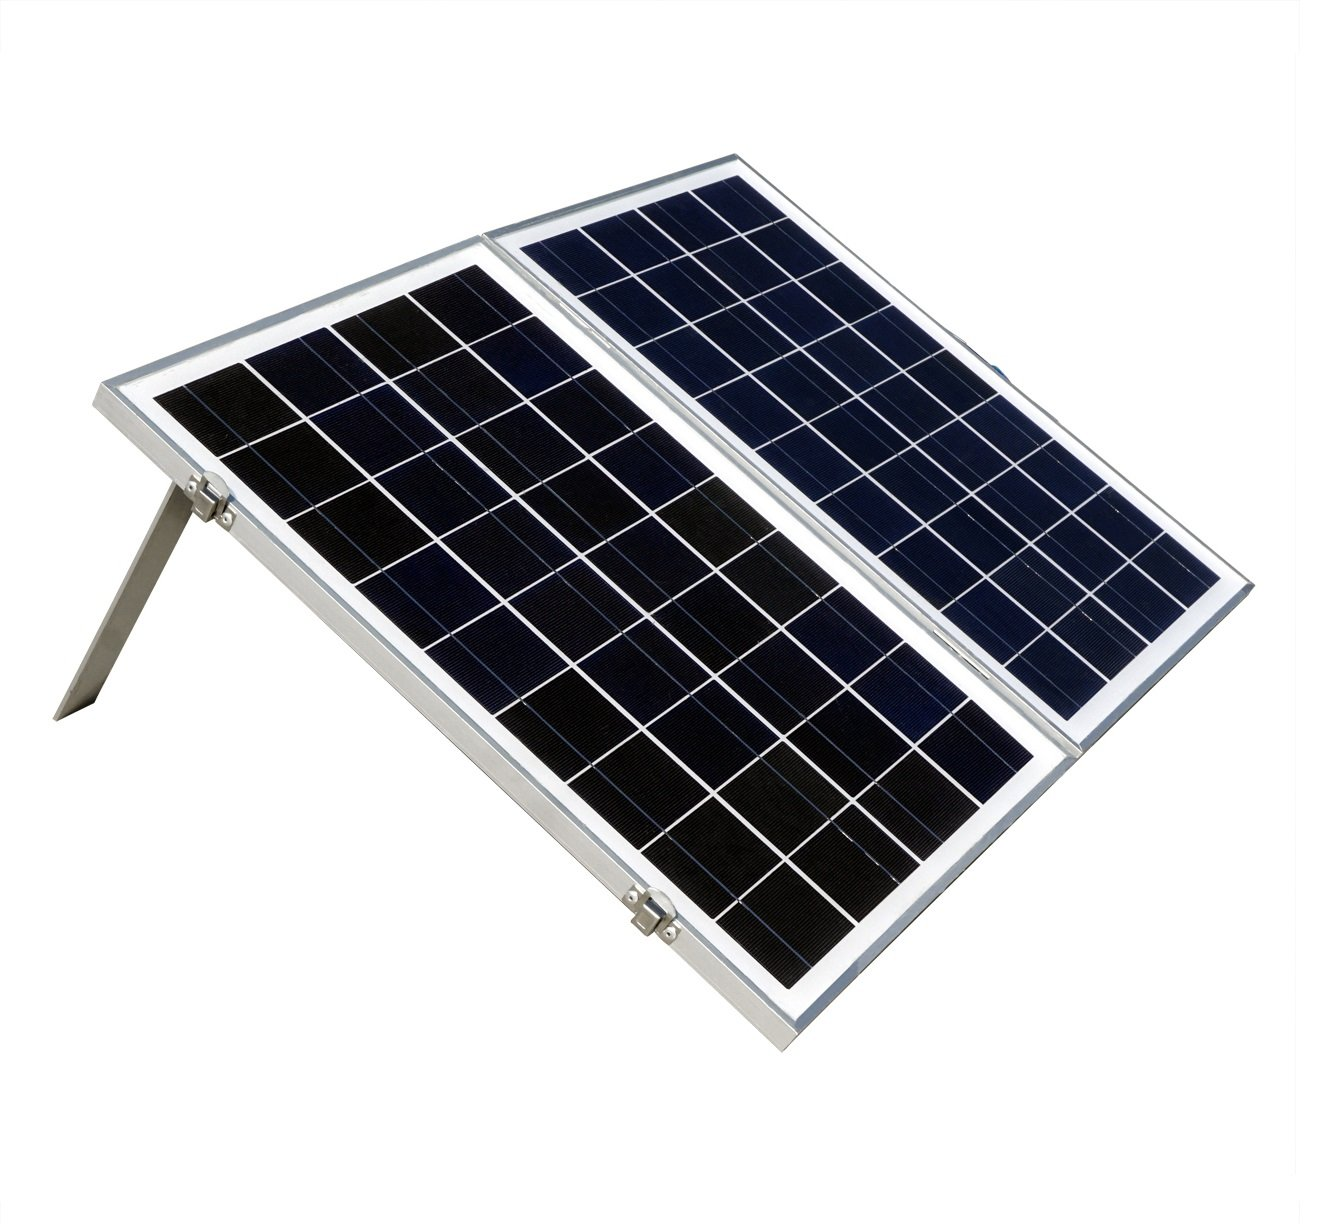 Eco Worthy 40w 12v Solar Charger Kits Portable Folding Battery Circuit Besides Mppt Charge Controller Panel Module With 3 Amp For Rv Boat Garden Outdoor